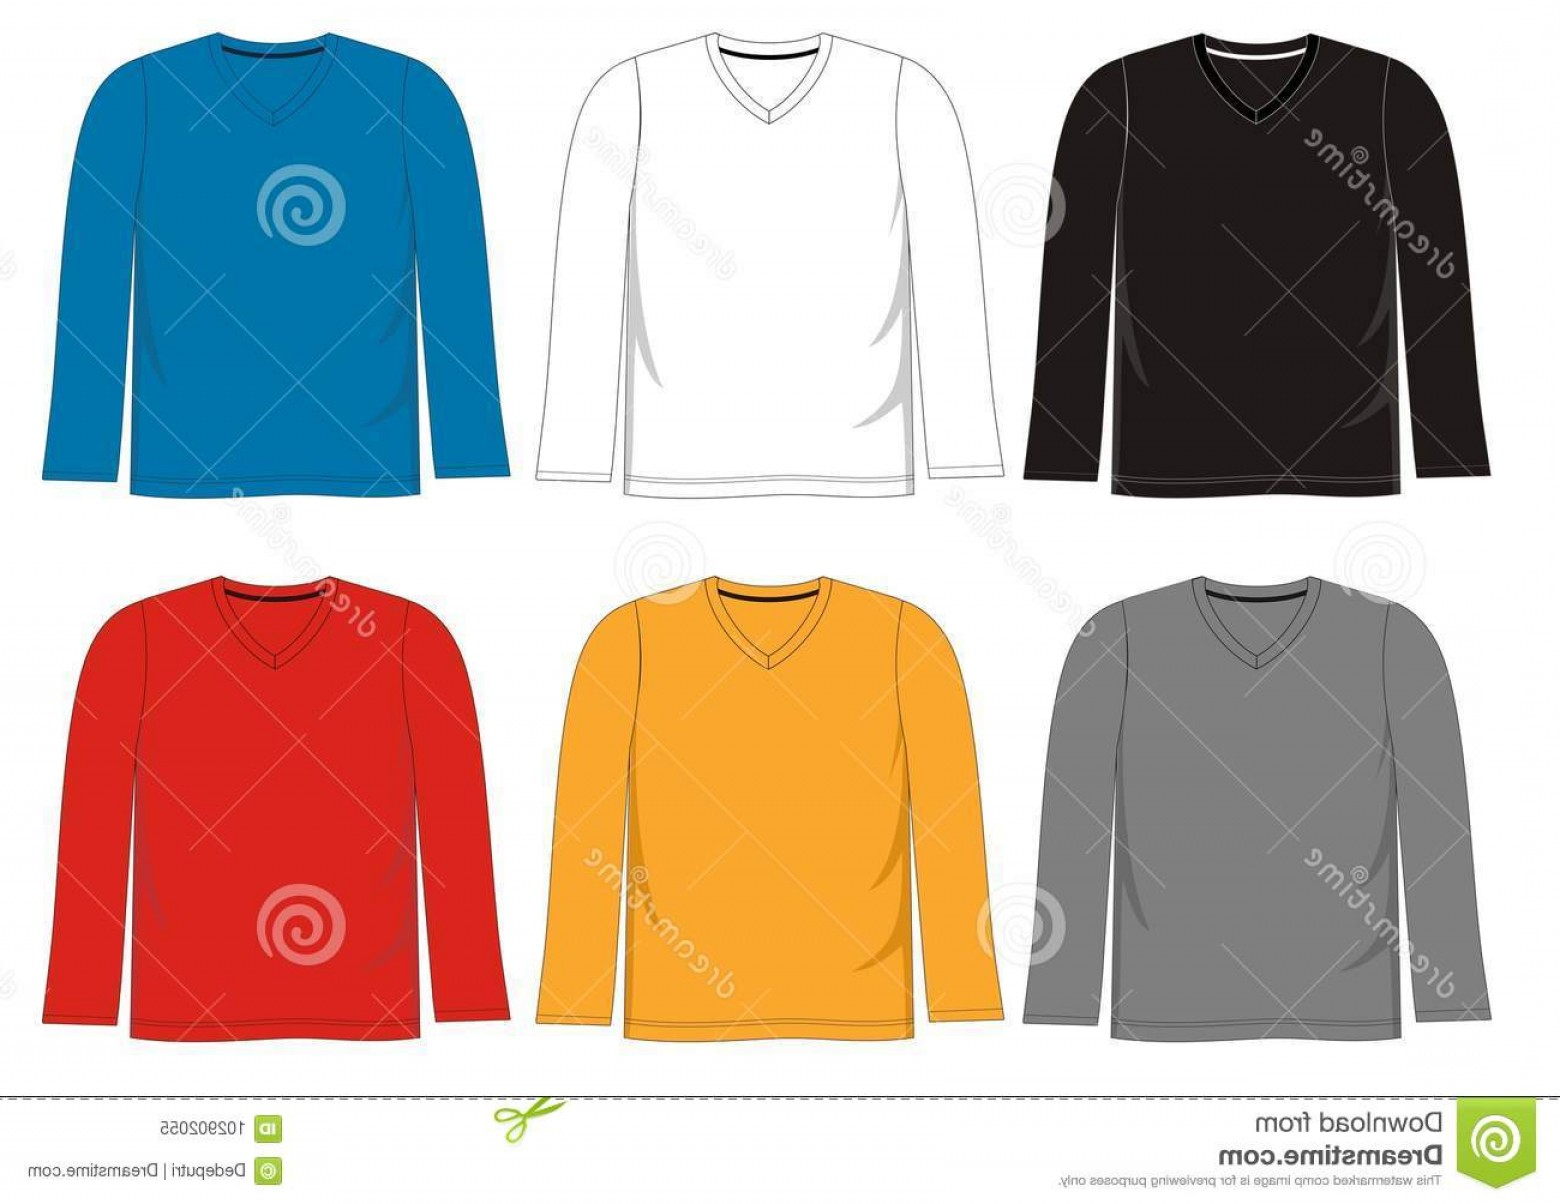 Long Sleeve Jersey Vector Template: Vector Template T Shirt Men Color Black White Blue Yellow Red Template T Shirt V Neck Long Sleeve Image